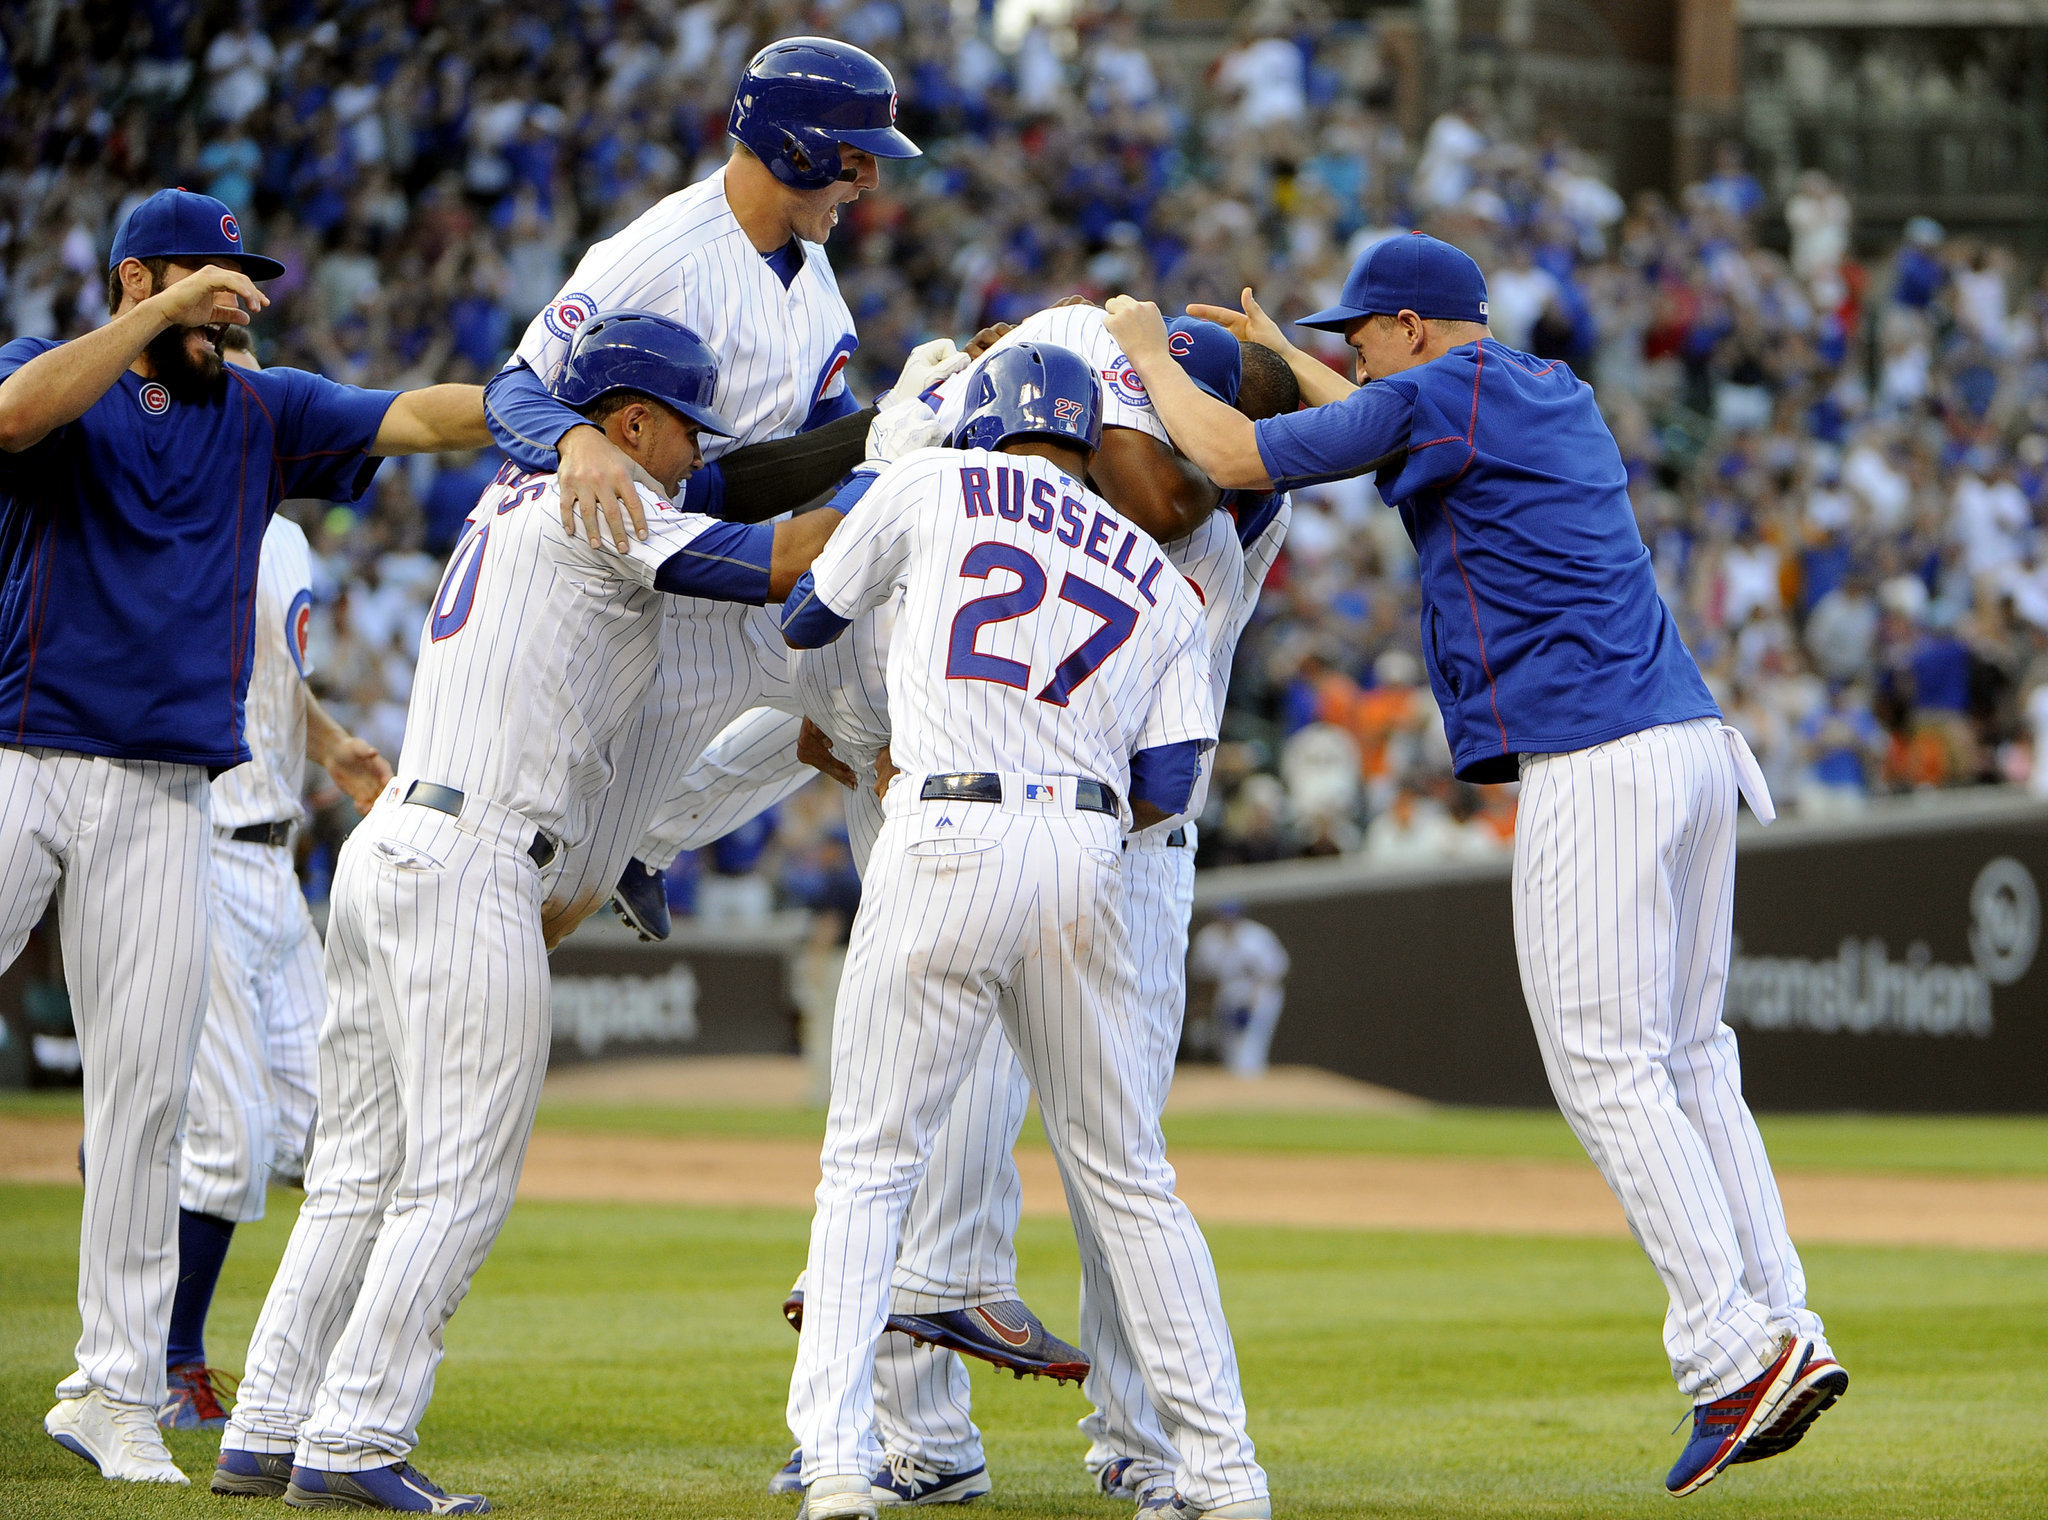 a6f5646f8 We ranked the Chicago Cubs 2016 postseason roster by walk-up song - RedEye  Chicago